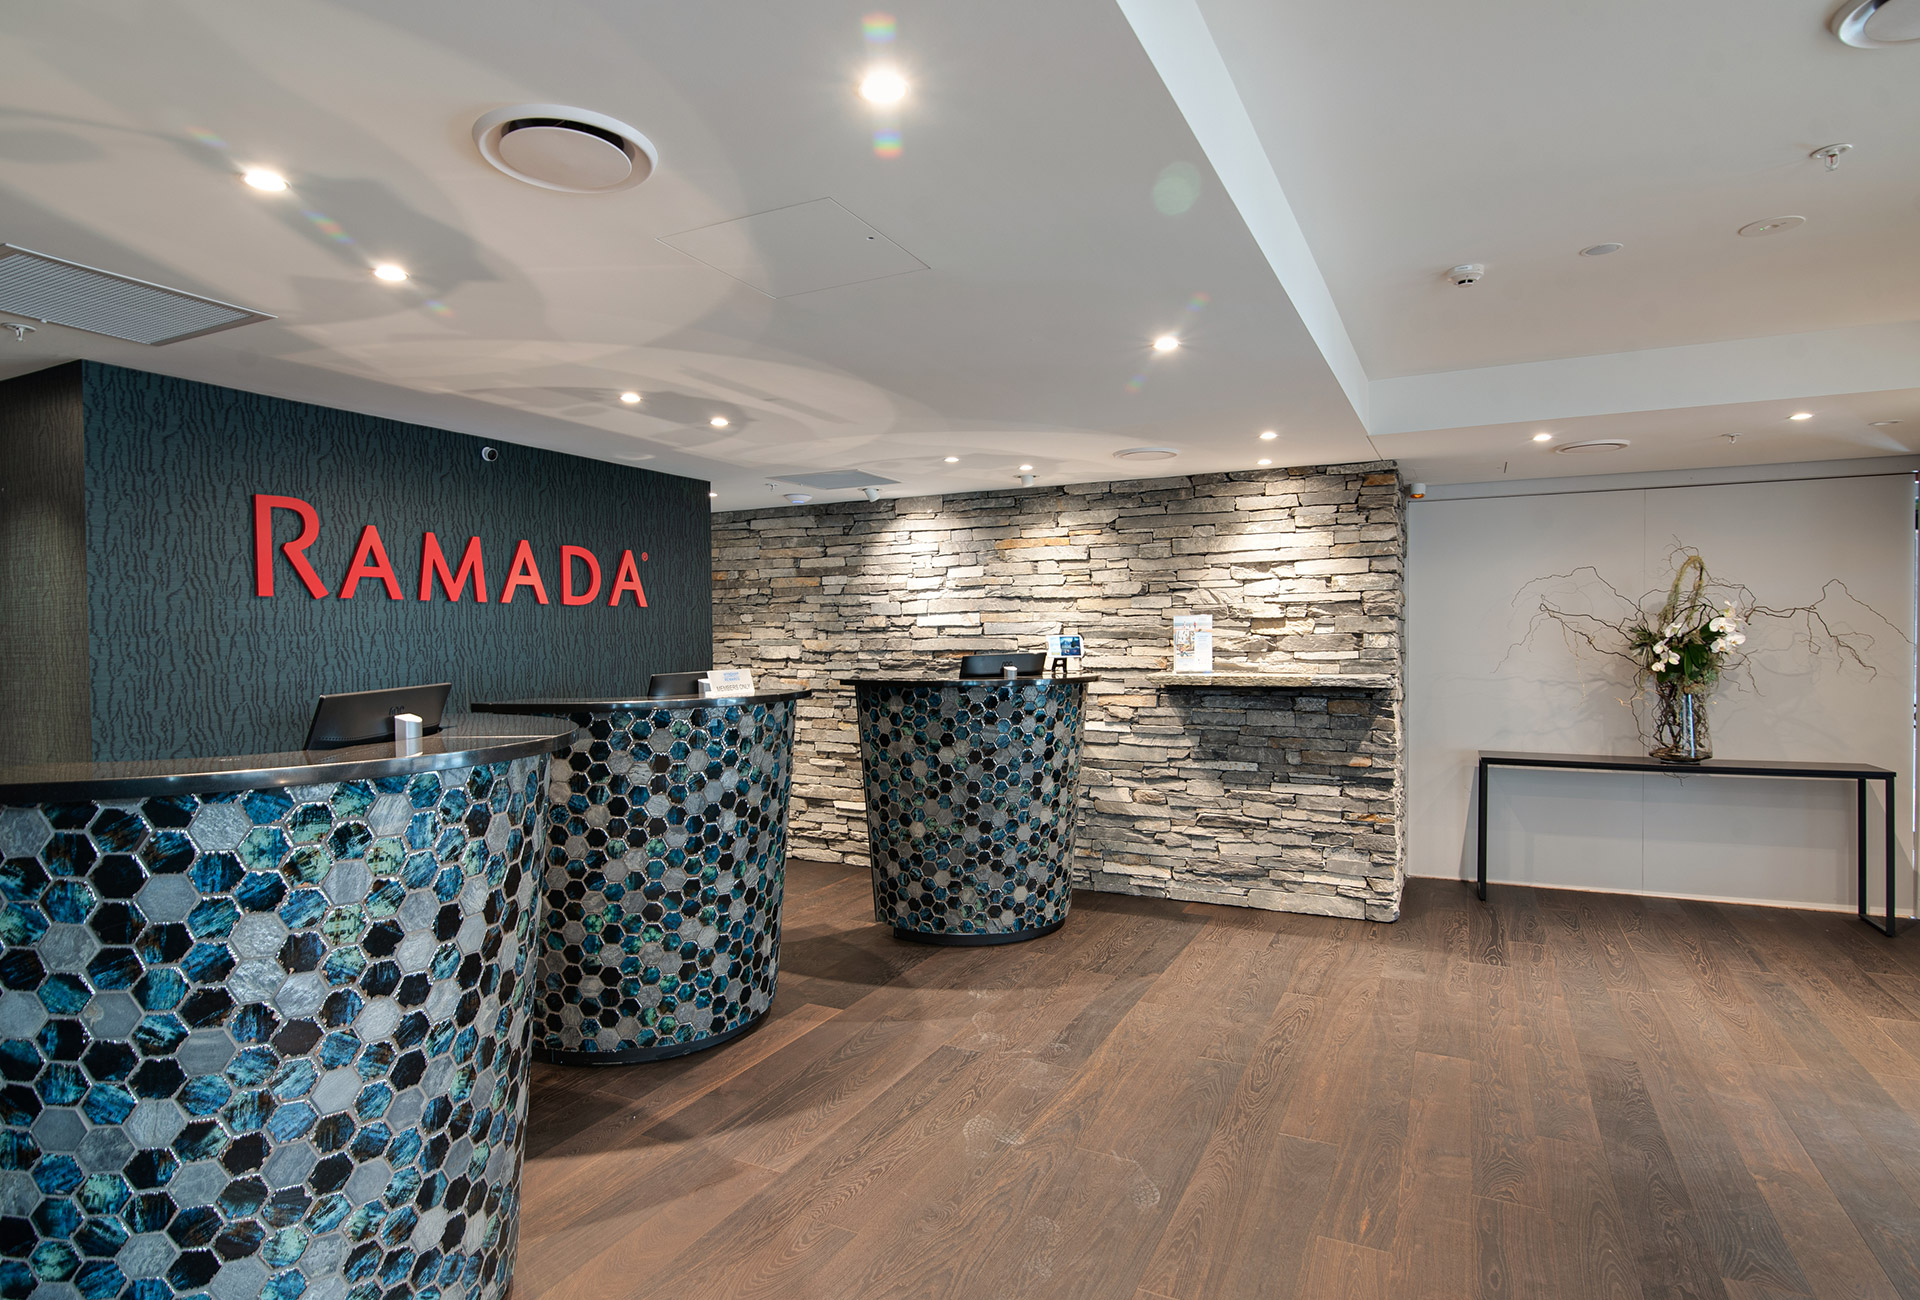 Ramada-Penthouse-and-externals-47